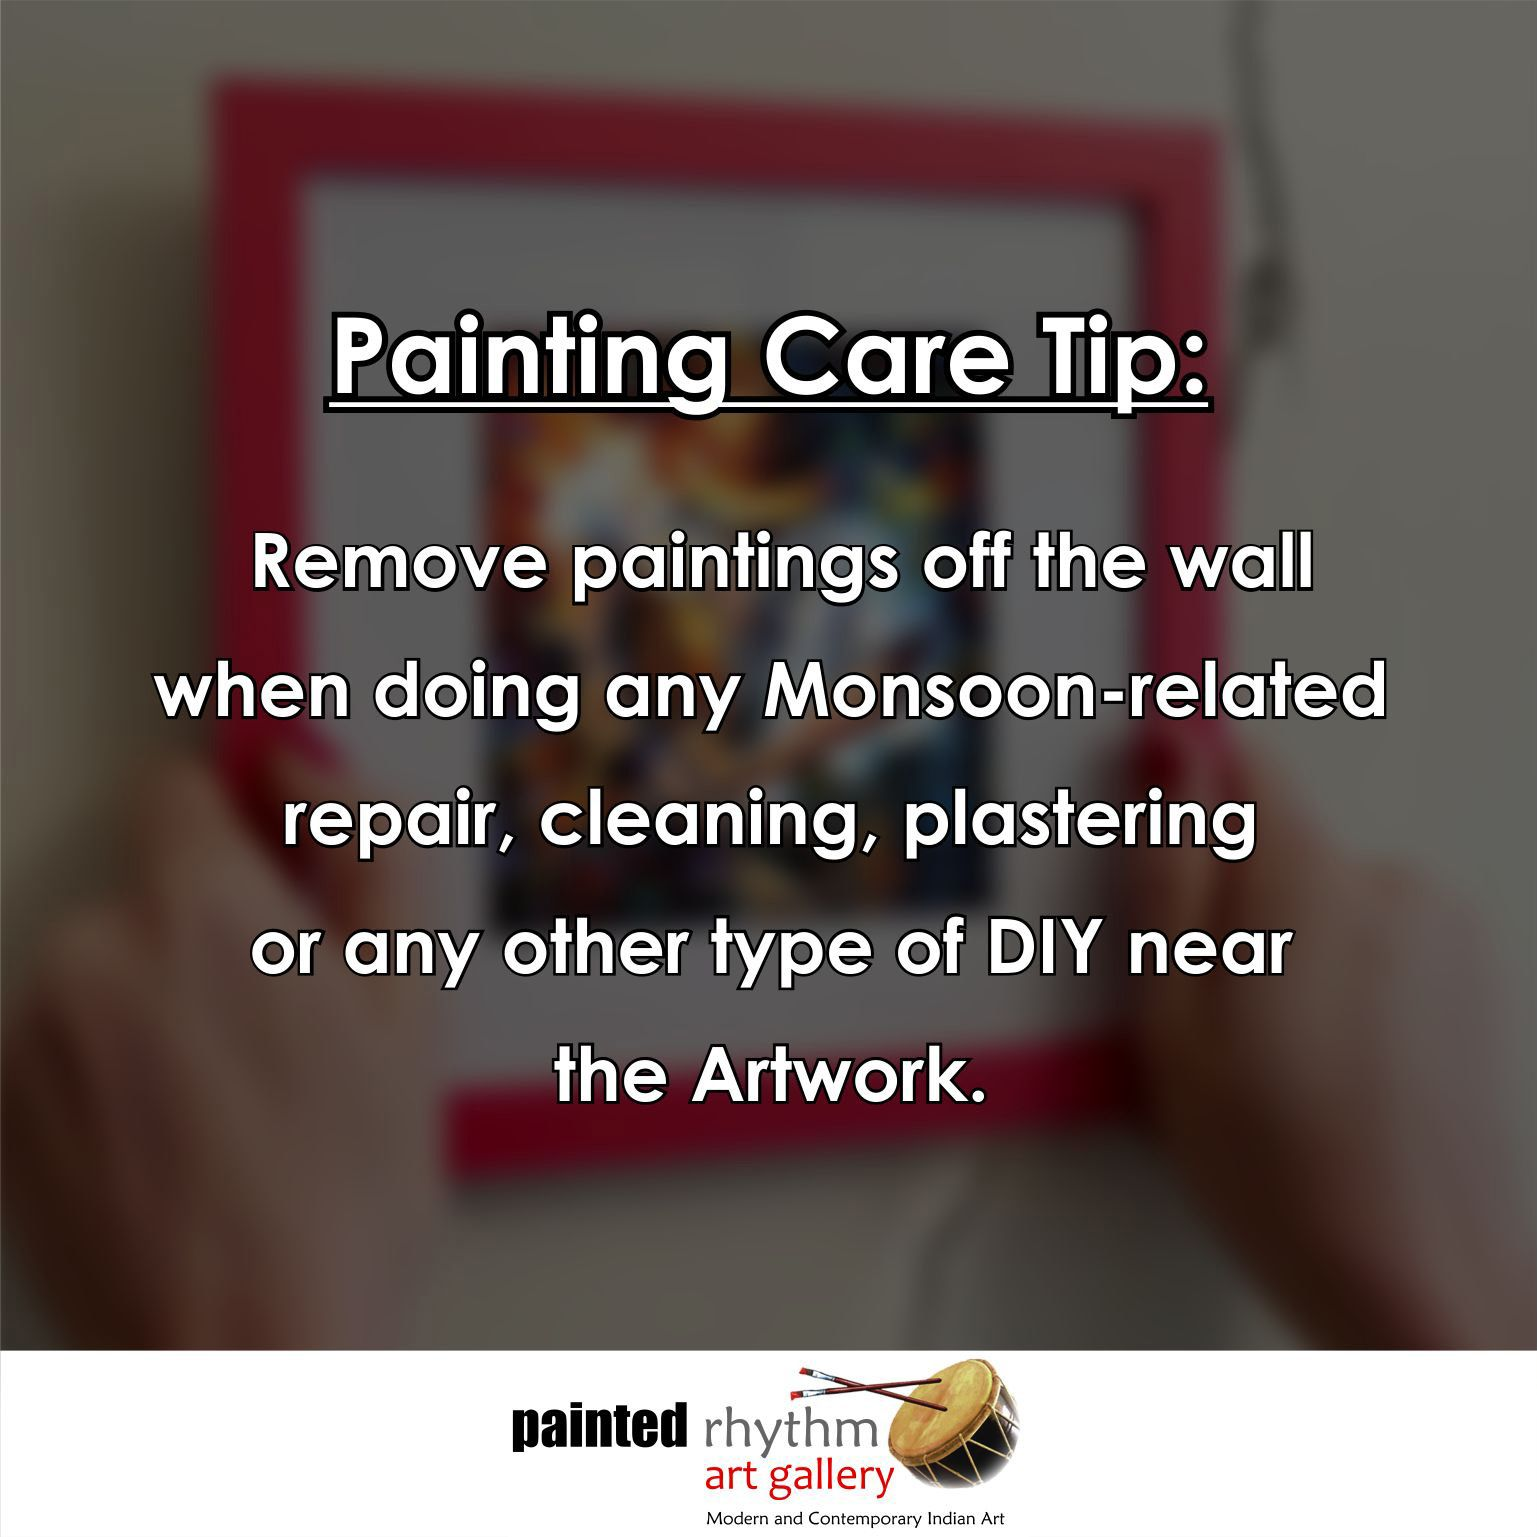 A little carelessness may lead a permanent damage to your precious paintings. #Monsoon #TipOfTheDay #PaintingCare #Maintainance #Art #ArtGallery #Painting